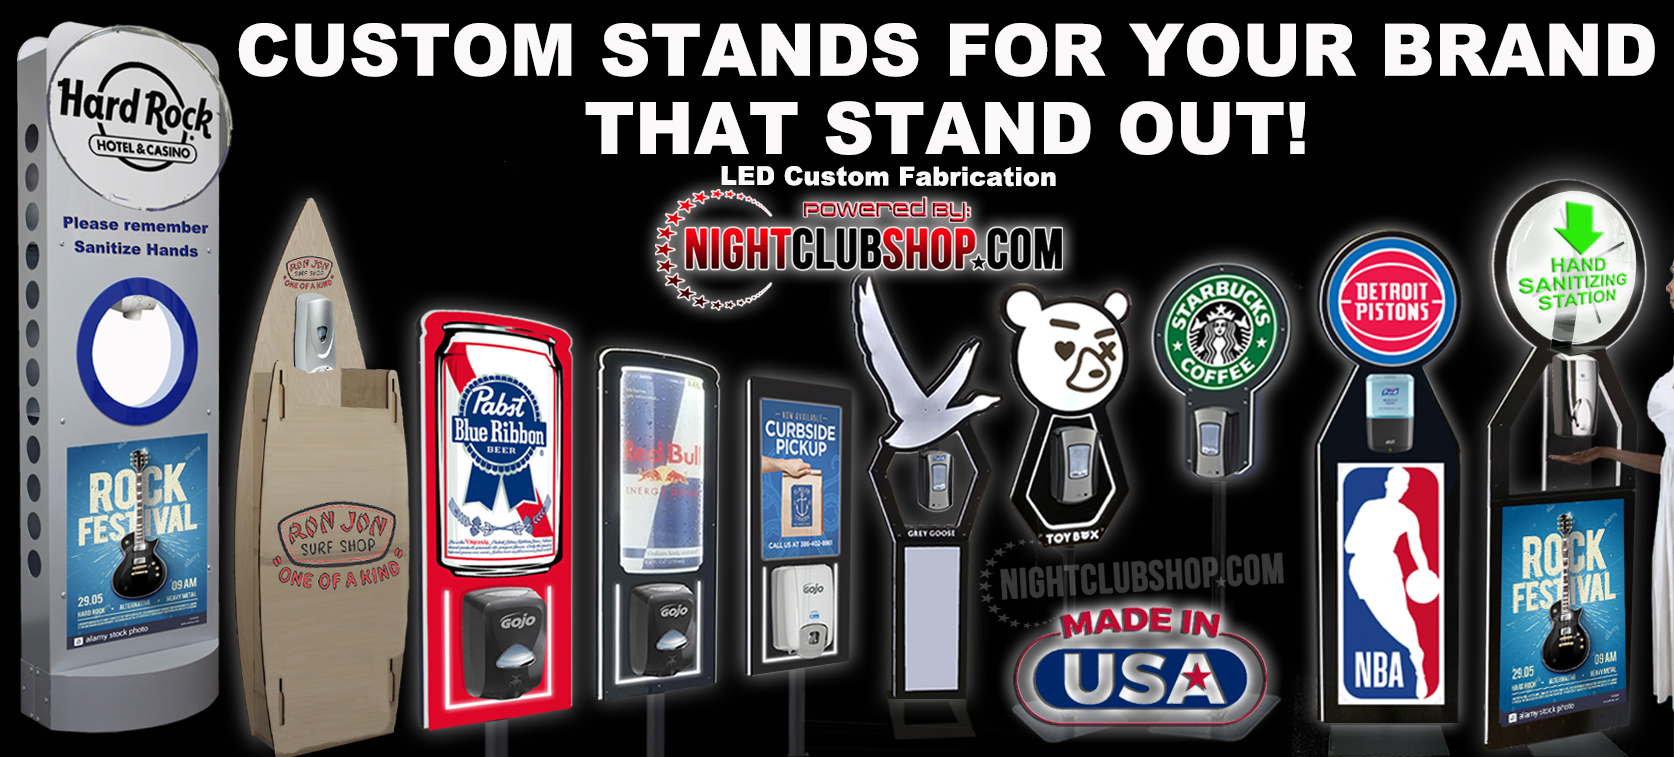 dispenser-stand-custom-led-sanitary-dispenser-stands-station-bespoke-nightclubshop.jpg